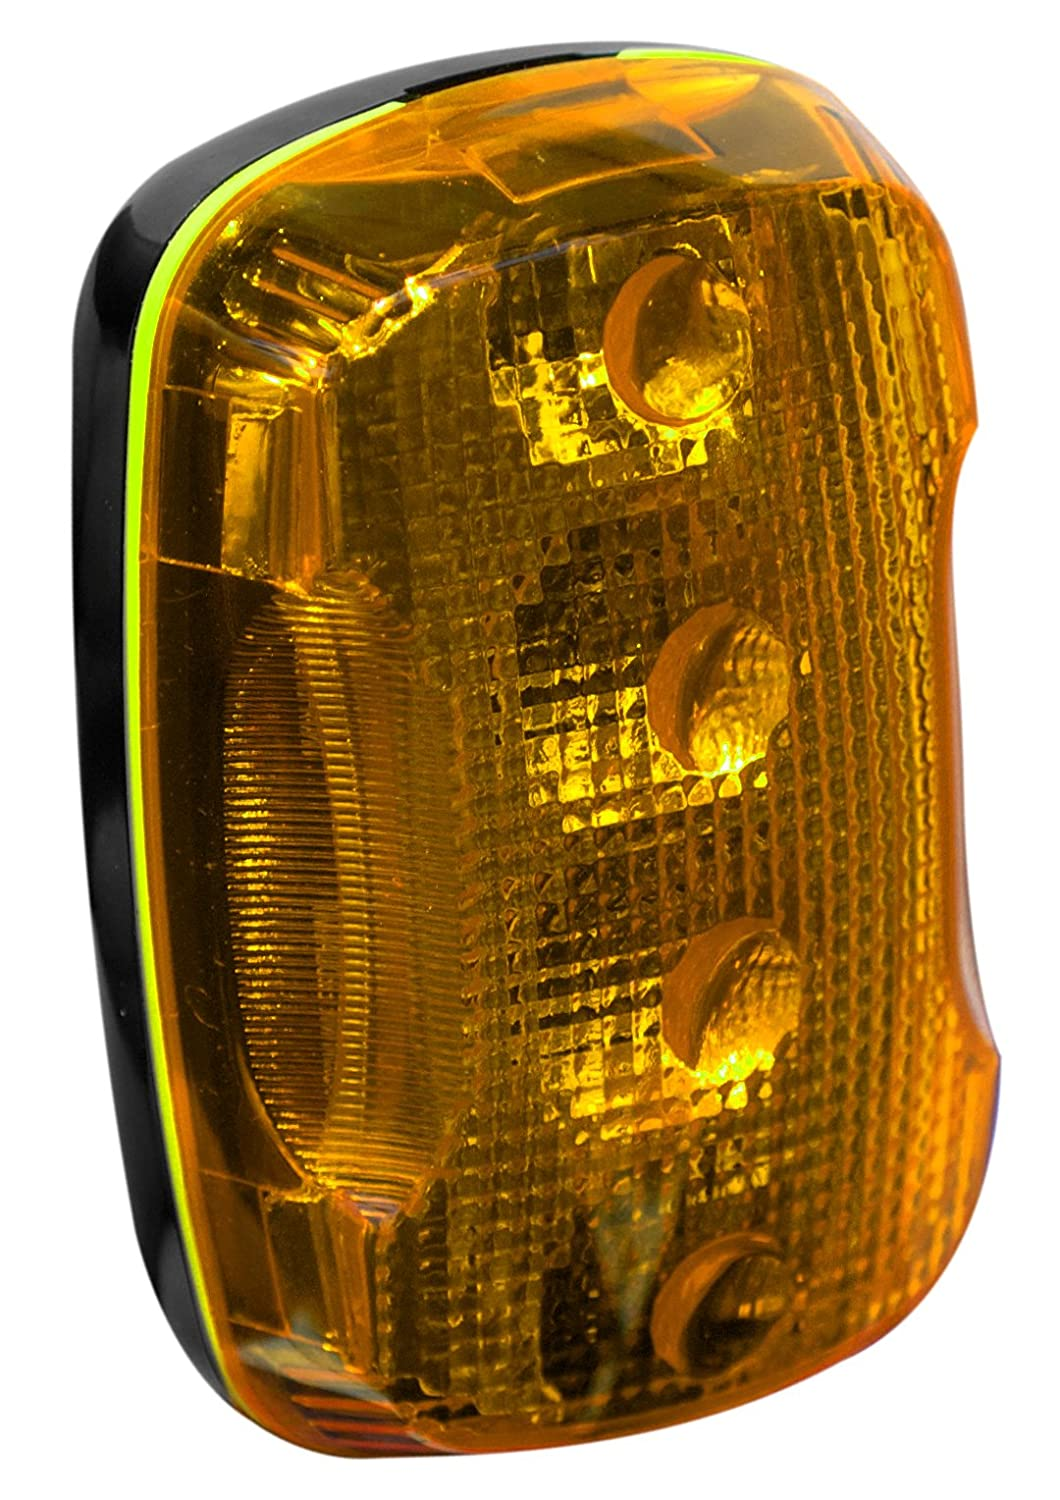 2-115//128 Length x 1-51//64 Width x 1-5//32 Thick Amber FoxFire 6001650 Personal Safety Weather Resistant Light 4 LEDs